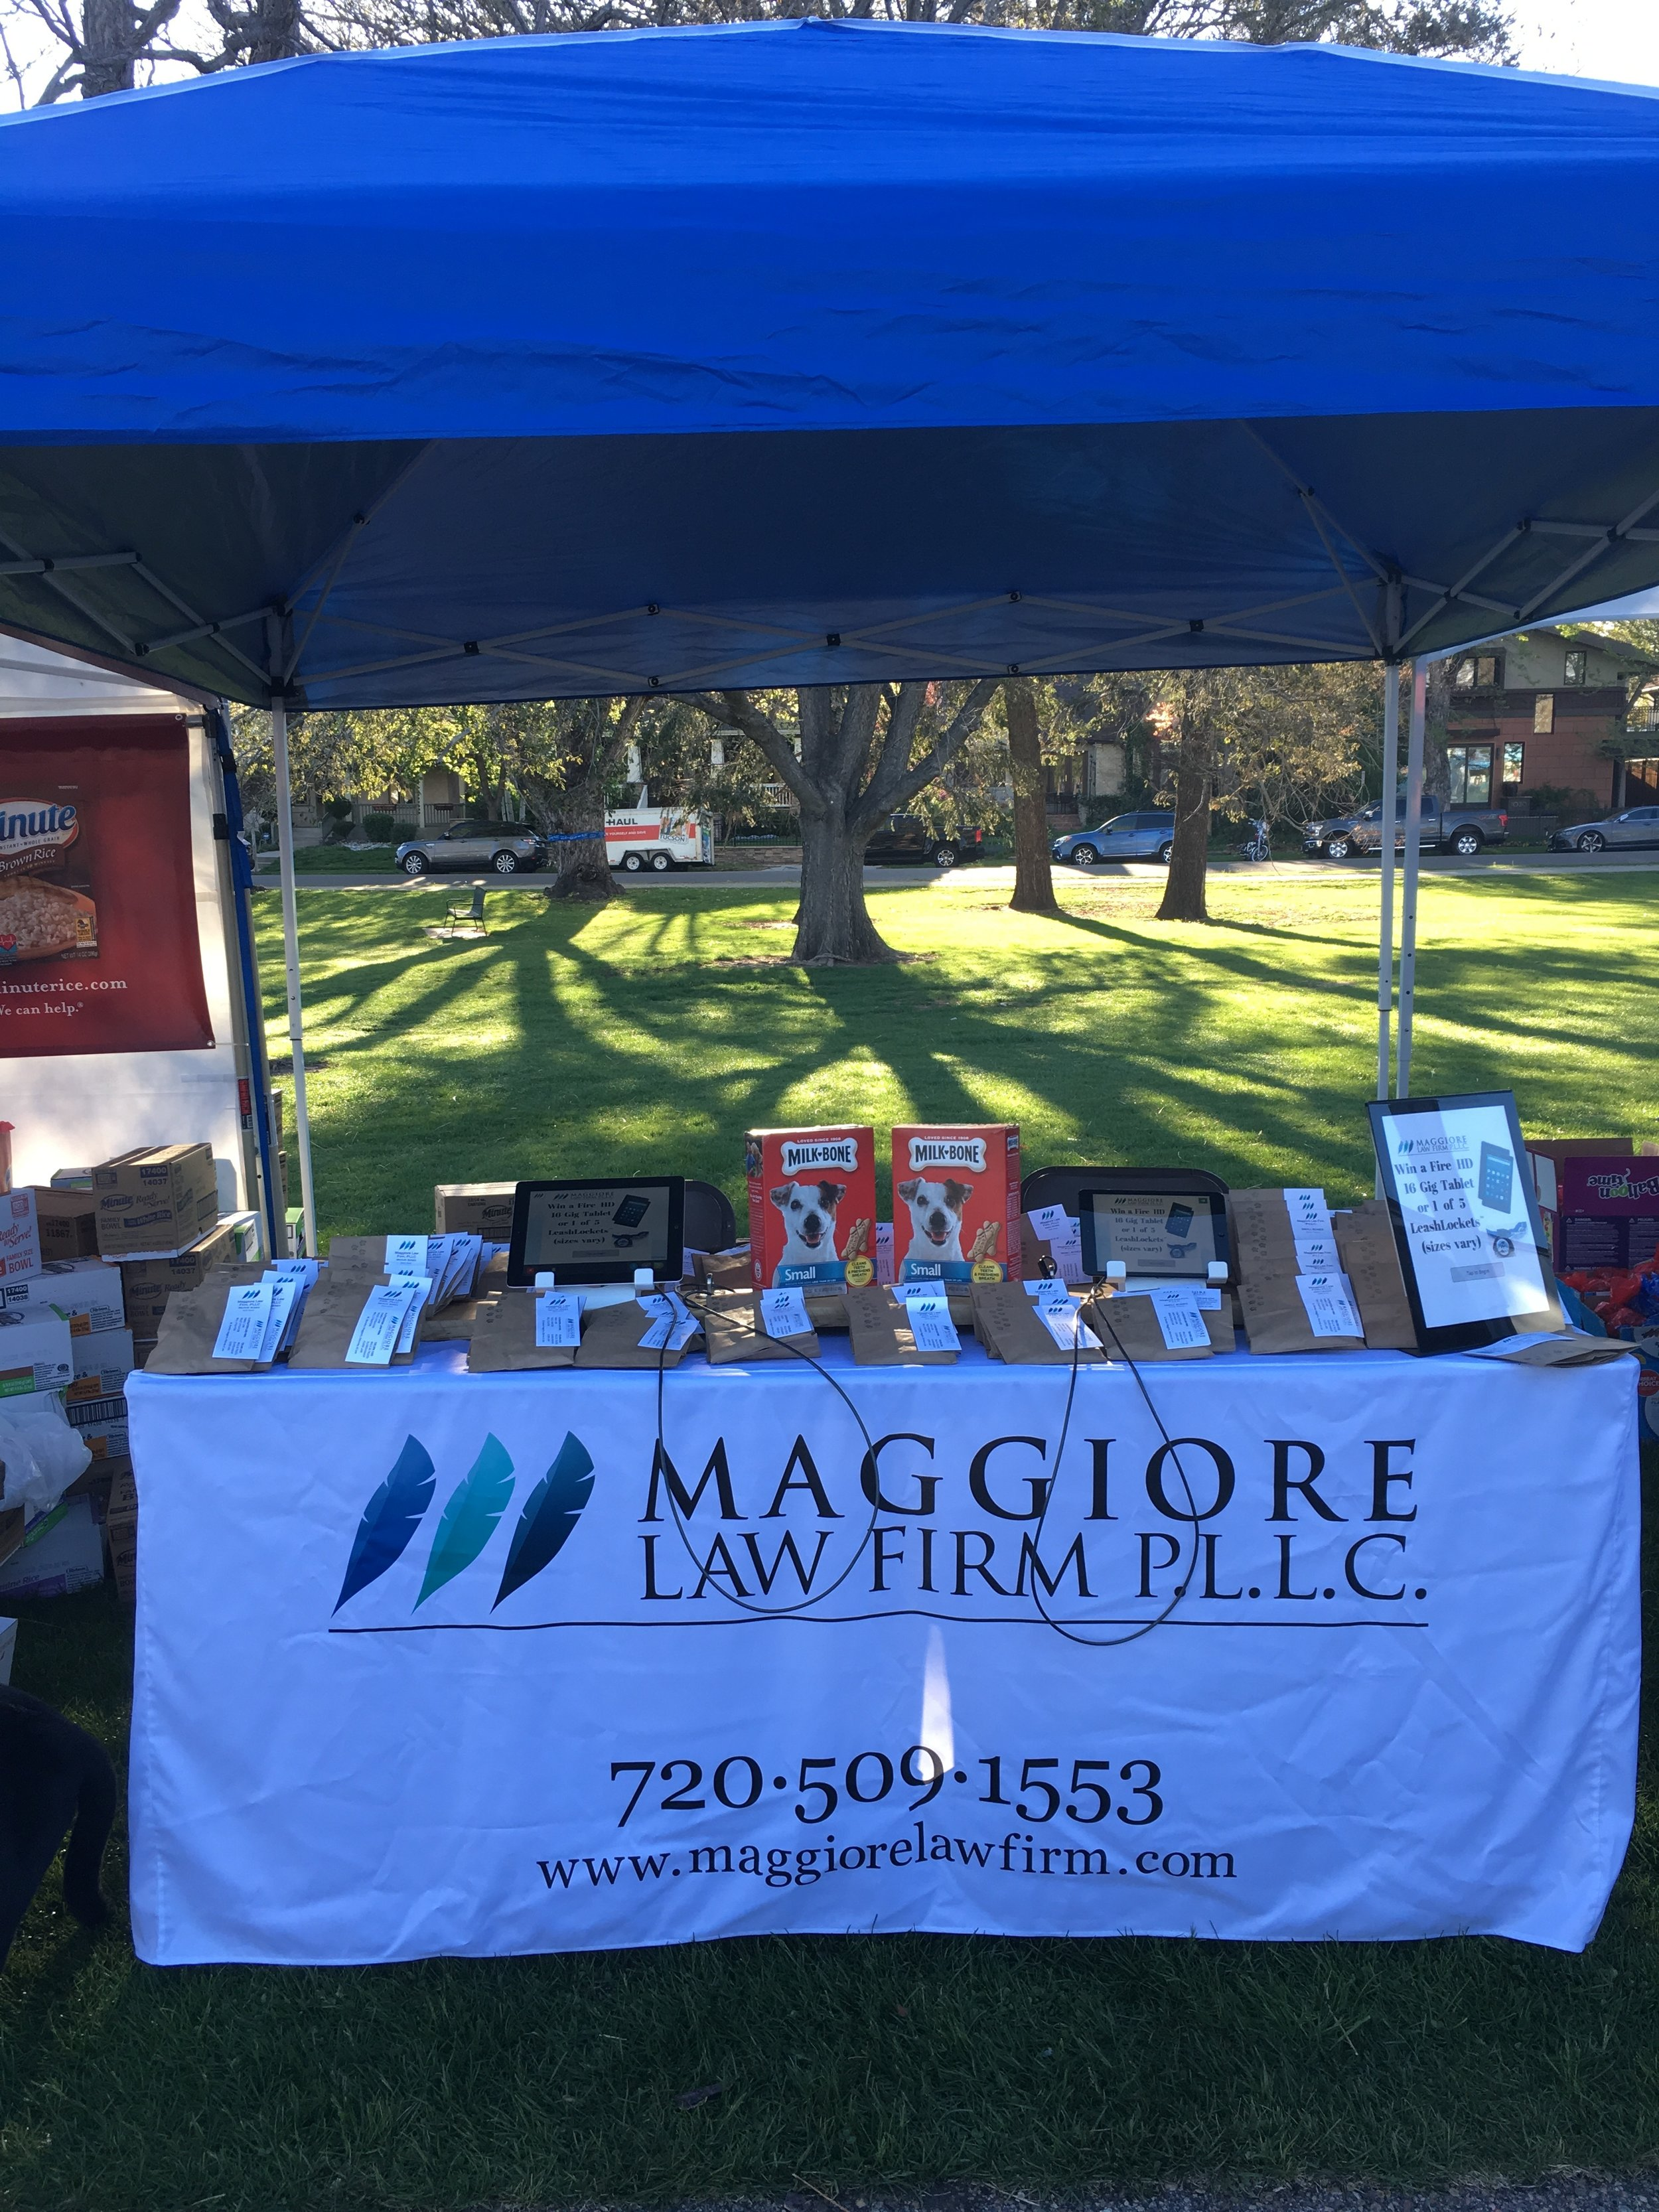 Maggiore Law Firm, P.L.L.C. 24th Annual Furry Scurry Booth